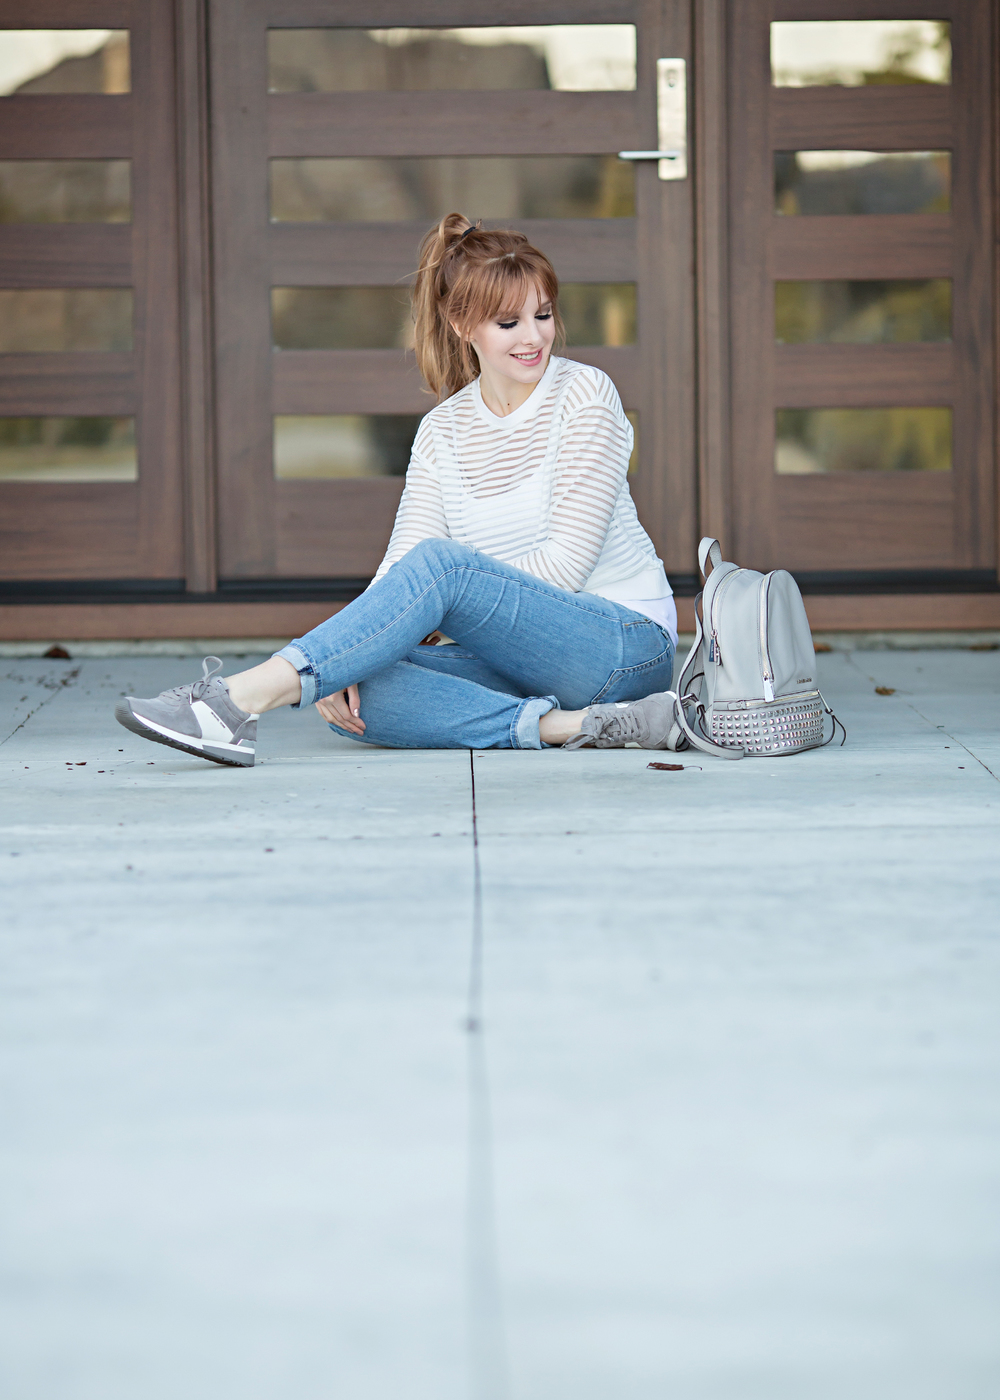 REdhead fashion casual cool style